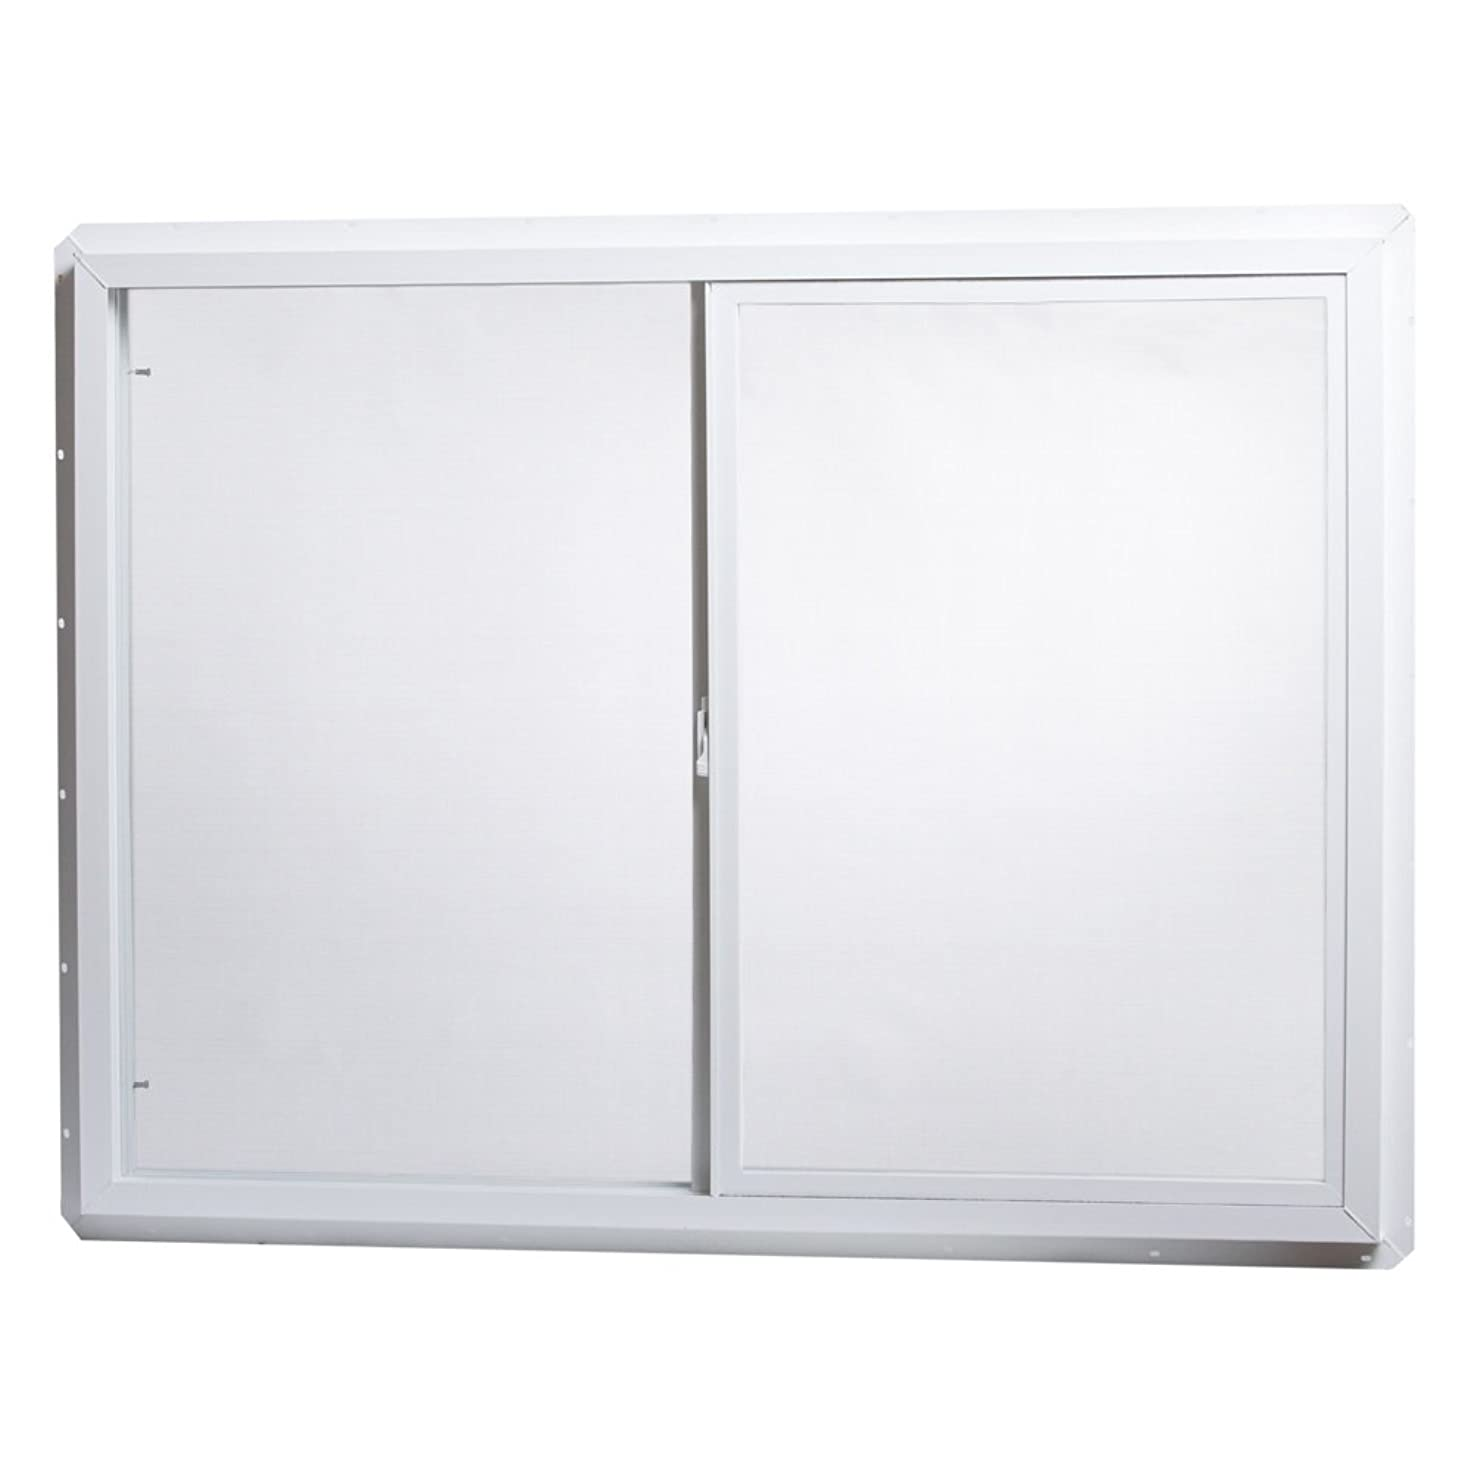 Park Ridge Products VUS4836PR Park Ridge Slider Glazed 48 in. x 36 in. Utility Single-Glass Sliding Vinyl Window – White,